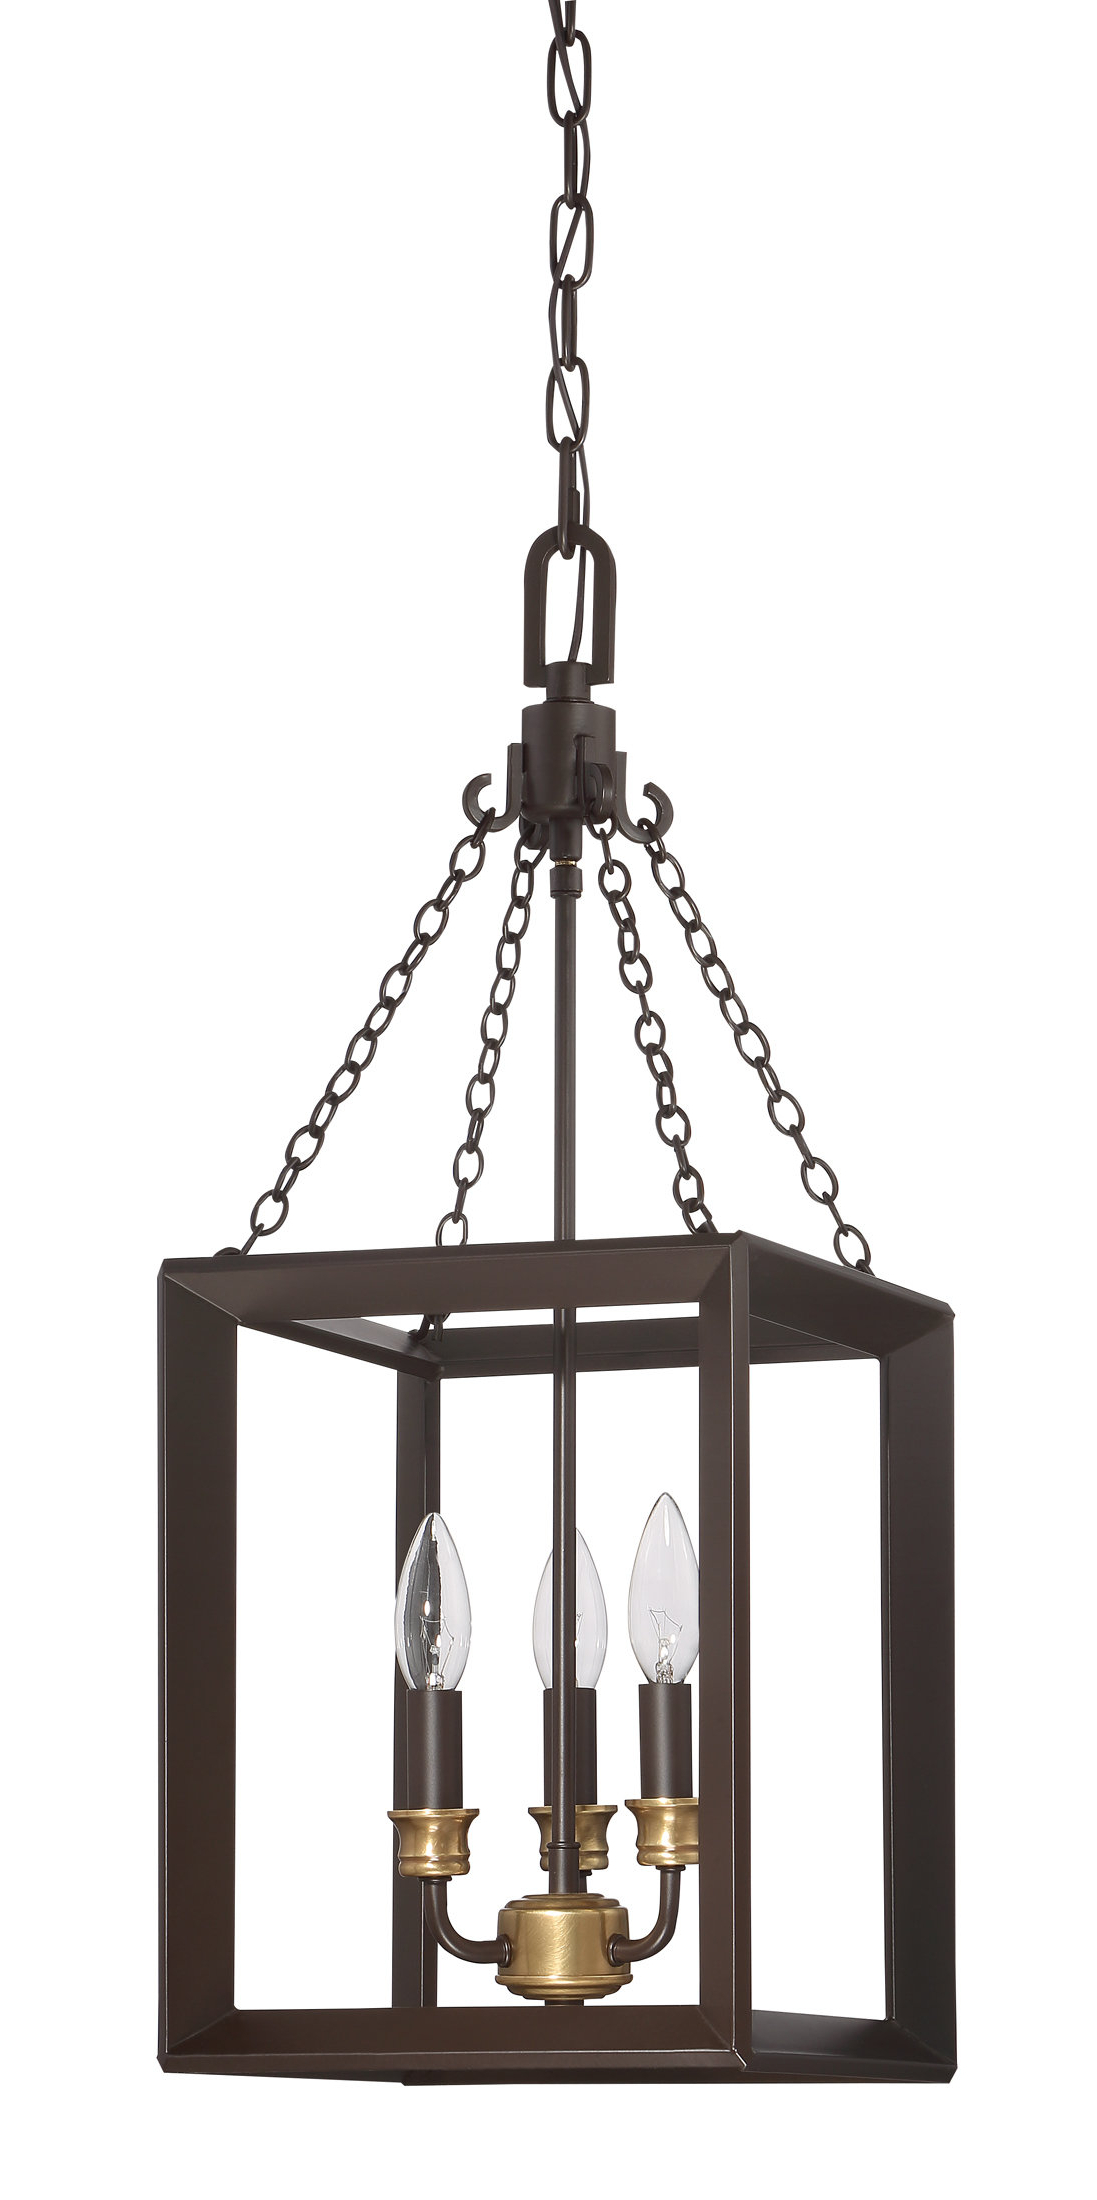 2019 Akash Industrial Vintage 1 Light Geometric Pendants With Regard To Ethyl 3 Light Lantern Geometric Pendant (Gallery 9 of 20)